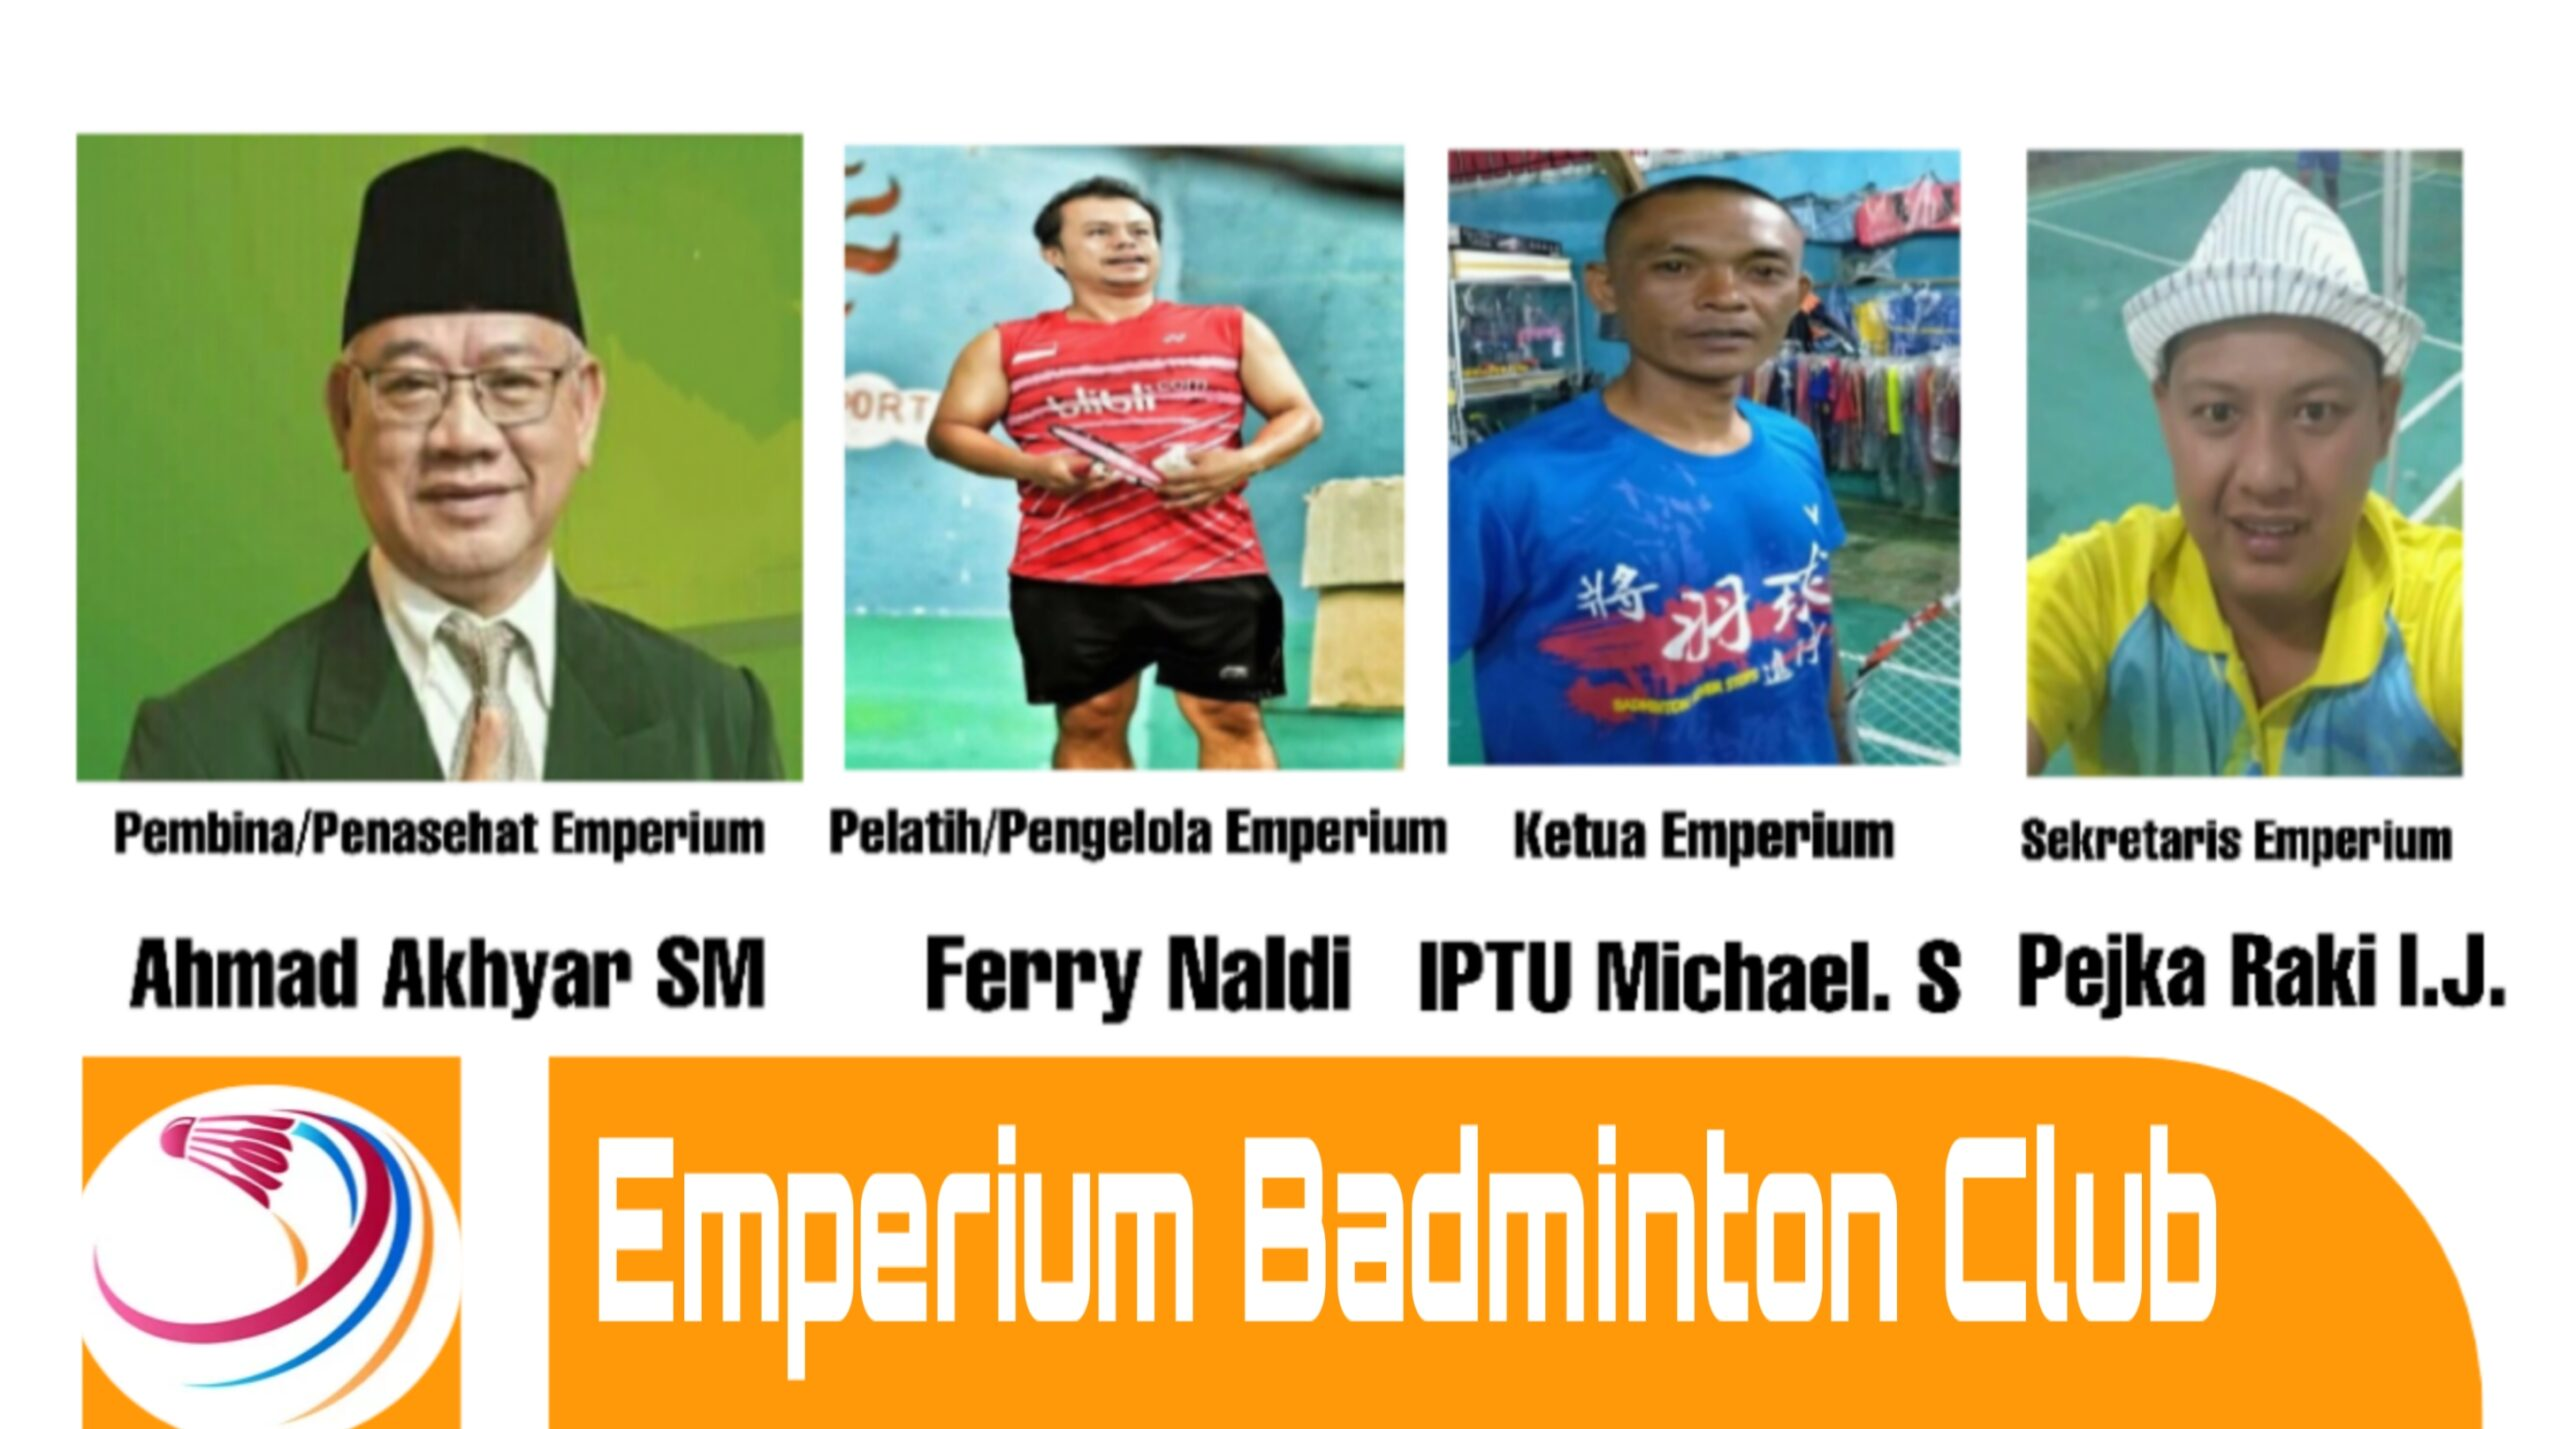 EMPERIUM BADMINTON CLUB